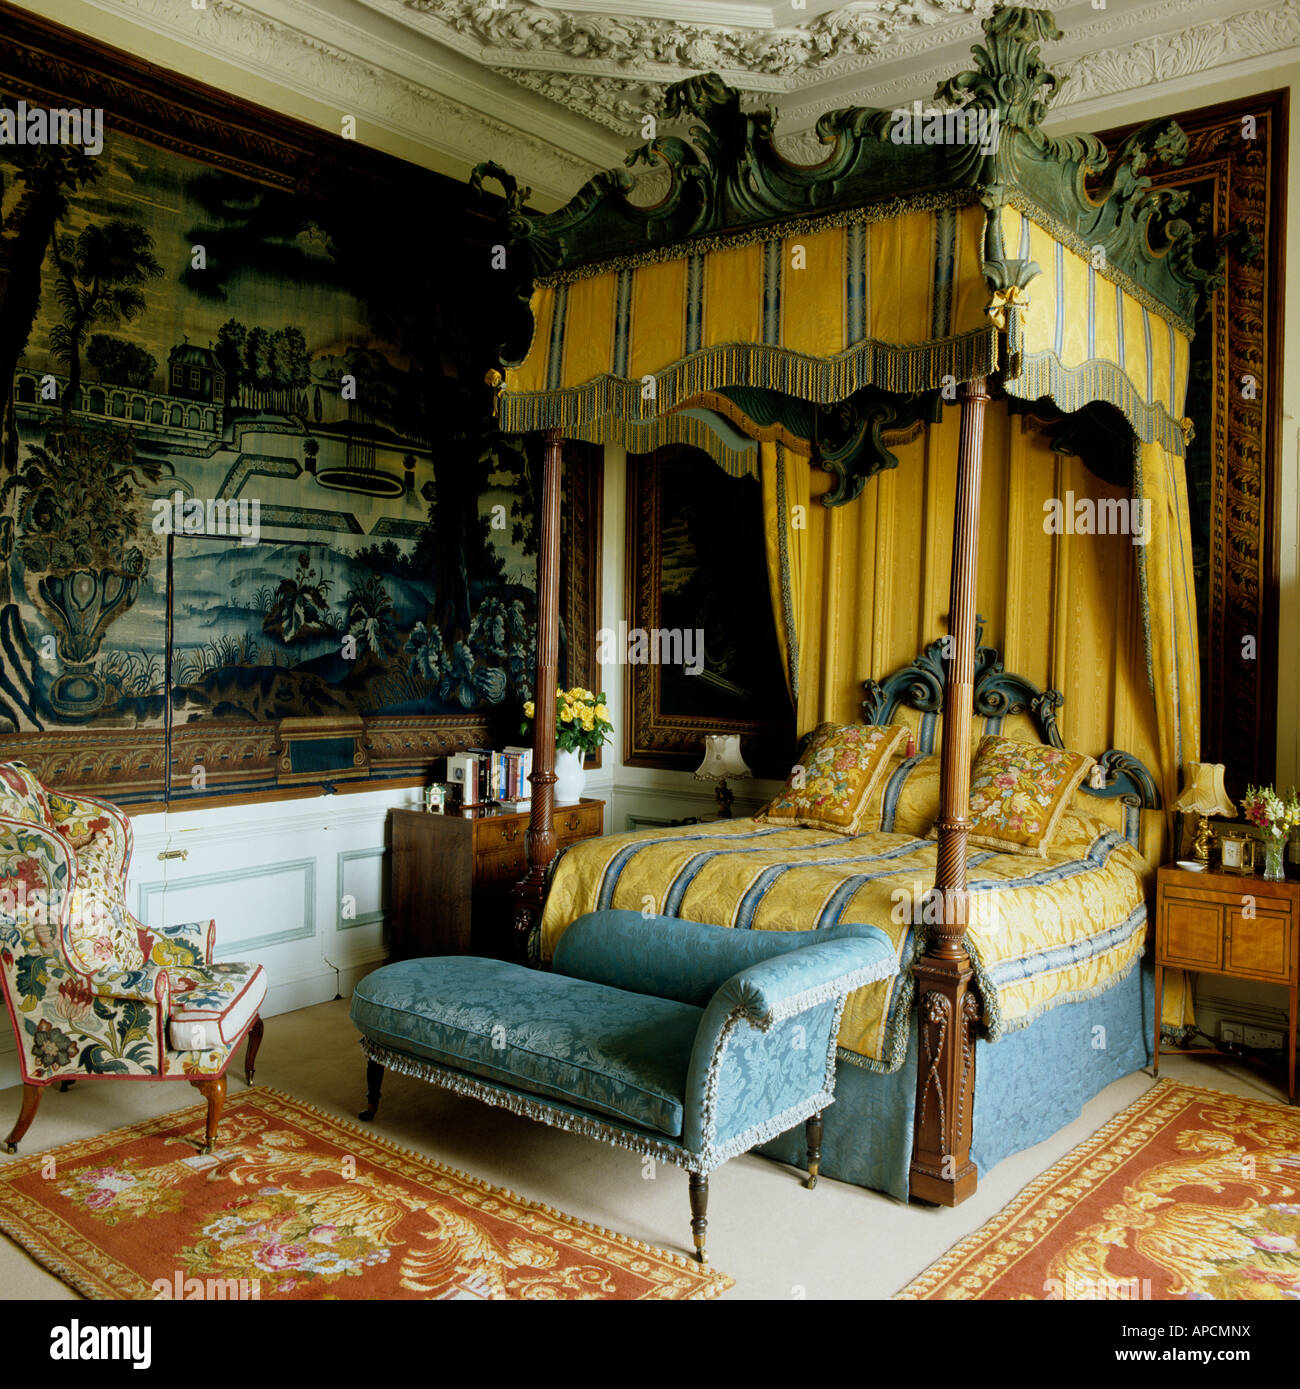 Fourposter bed in bedroom with tapestry at Burghley House, England - Stock Image